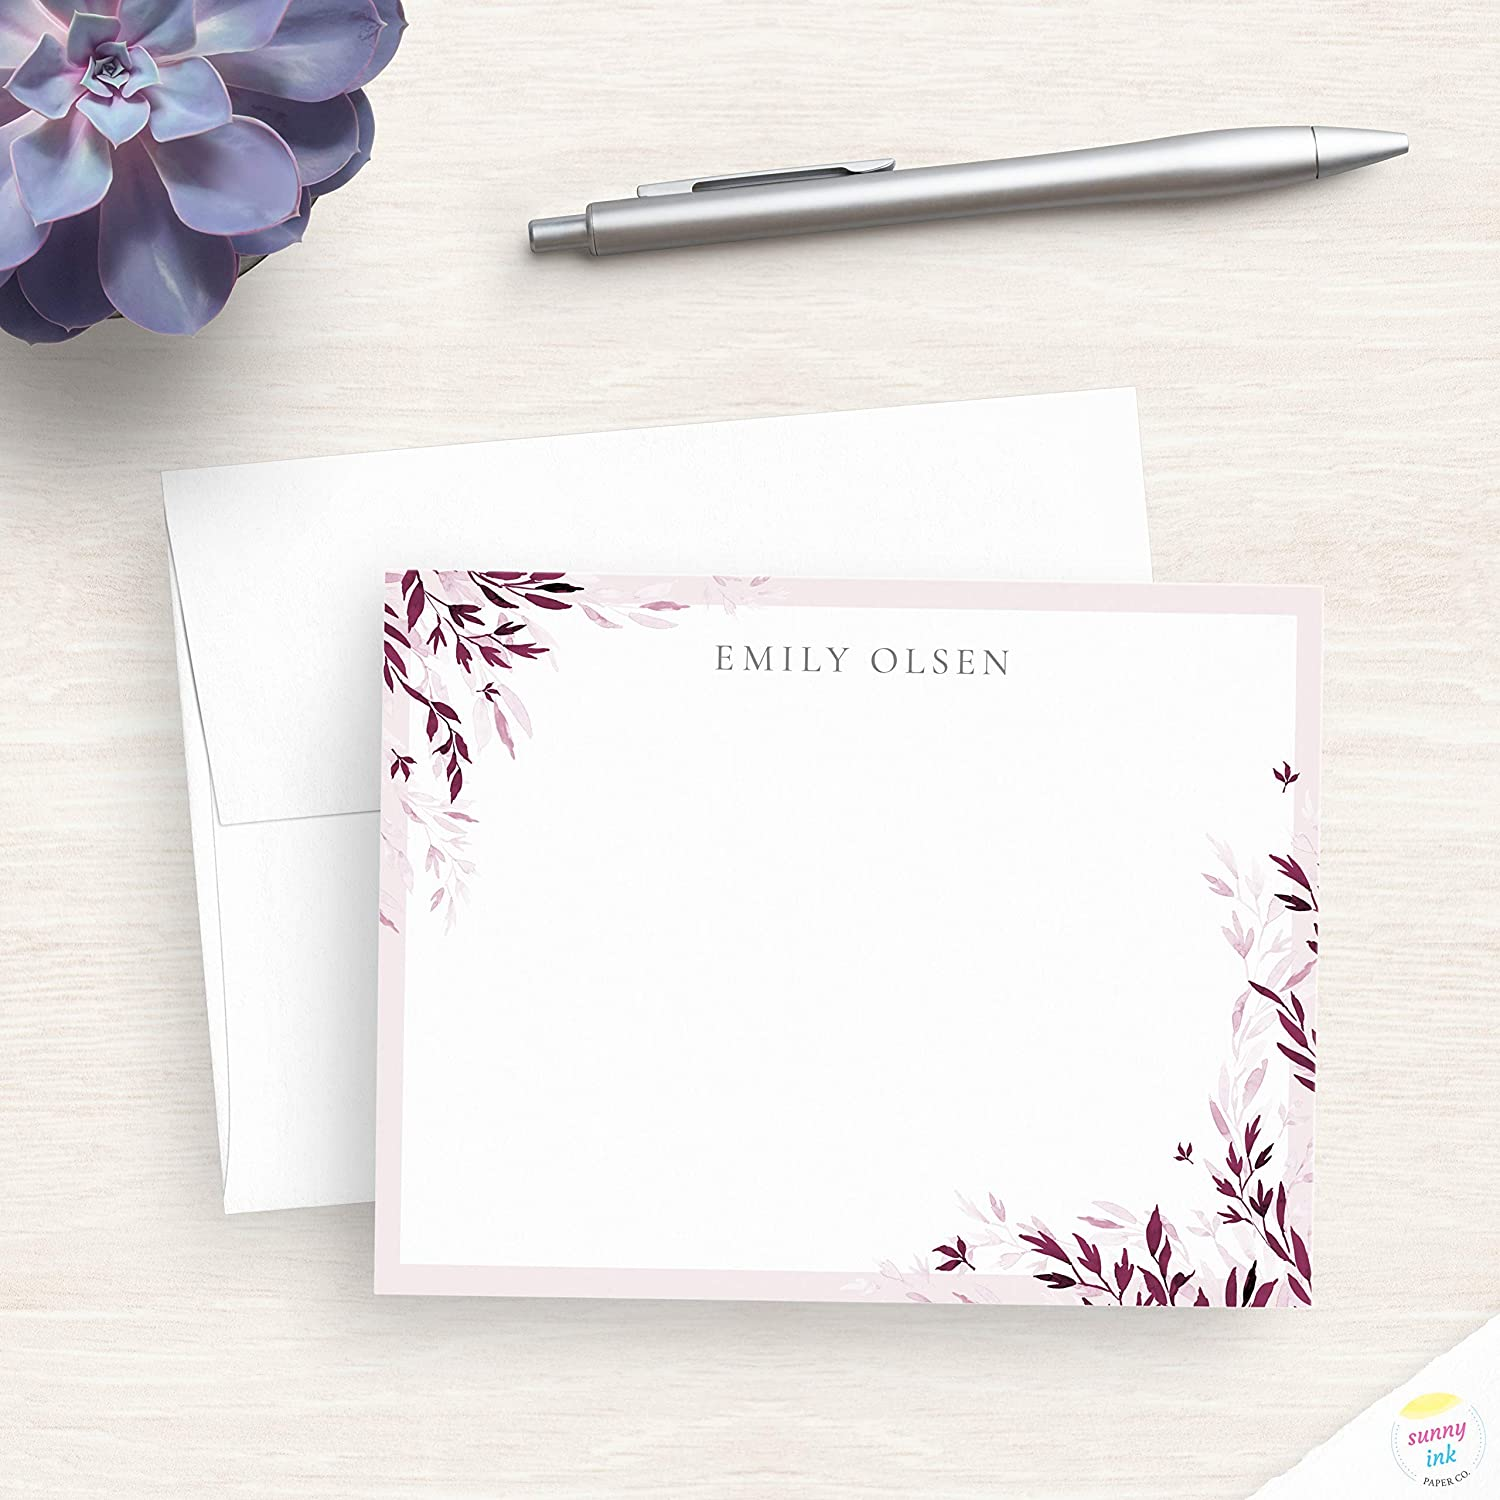 Note Cards Personalized Gift Flat Note Cards Pineapple Note Cards Stationary Personalized Note Cards Pineapple Cards 5x7 Note Cards